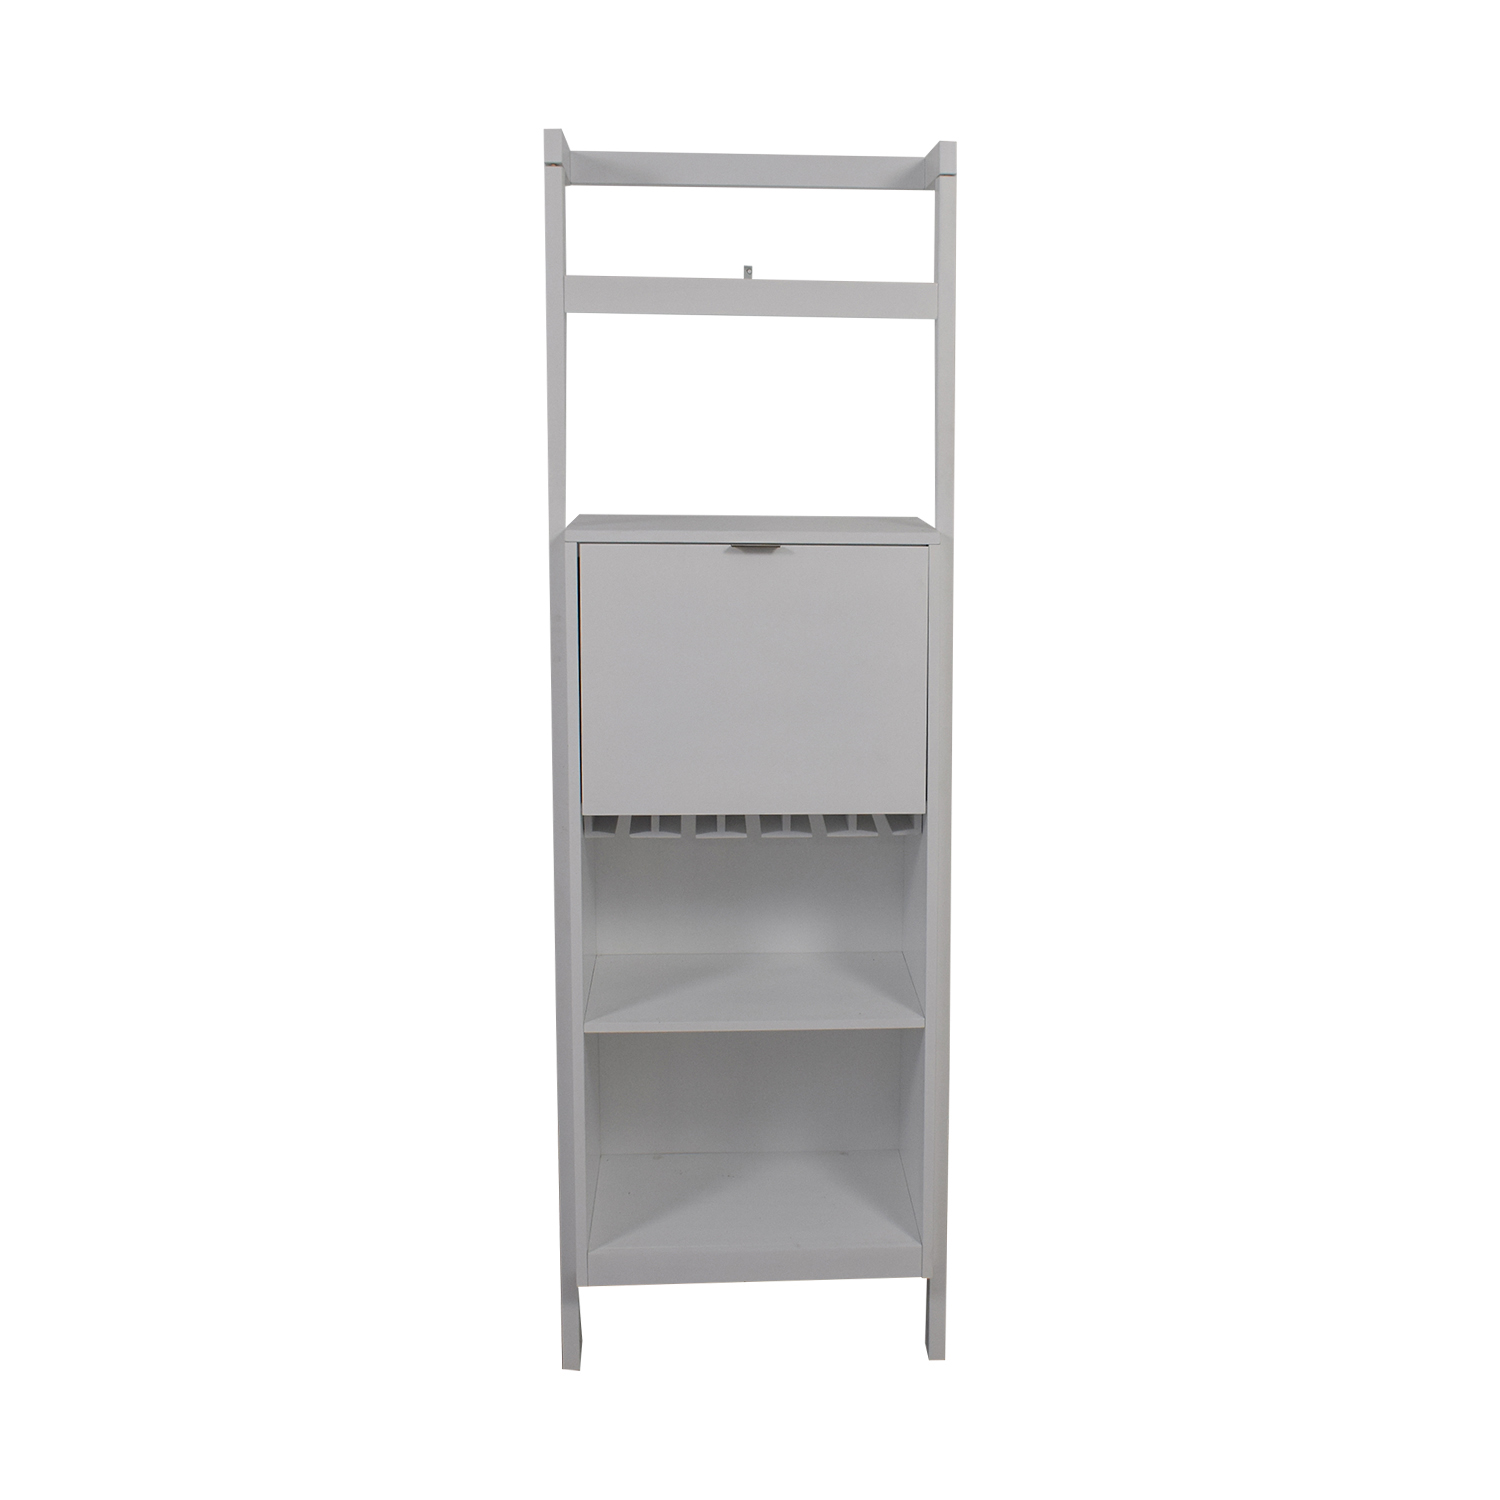 shop Crate & Barrel Sawyer White Leaning Spirit Cabinet Crate & Barrel Bookcases & Shelving